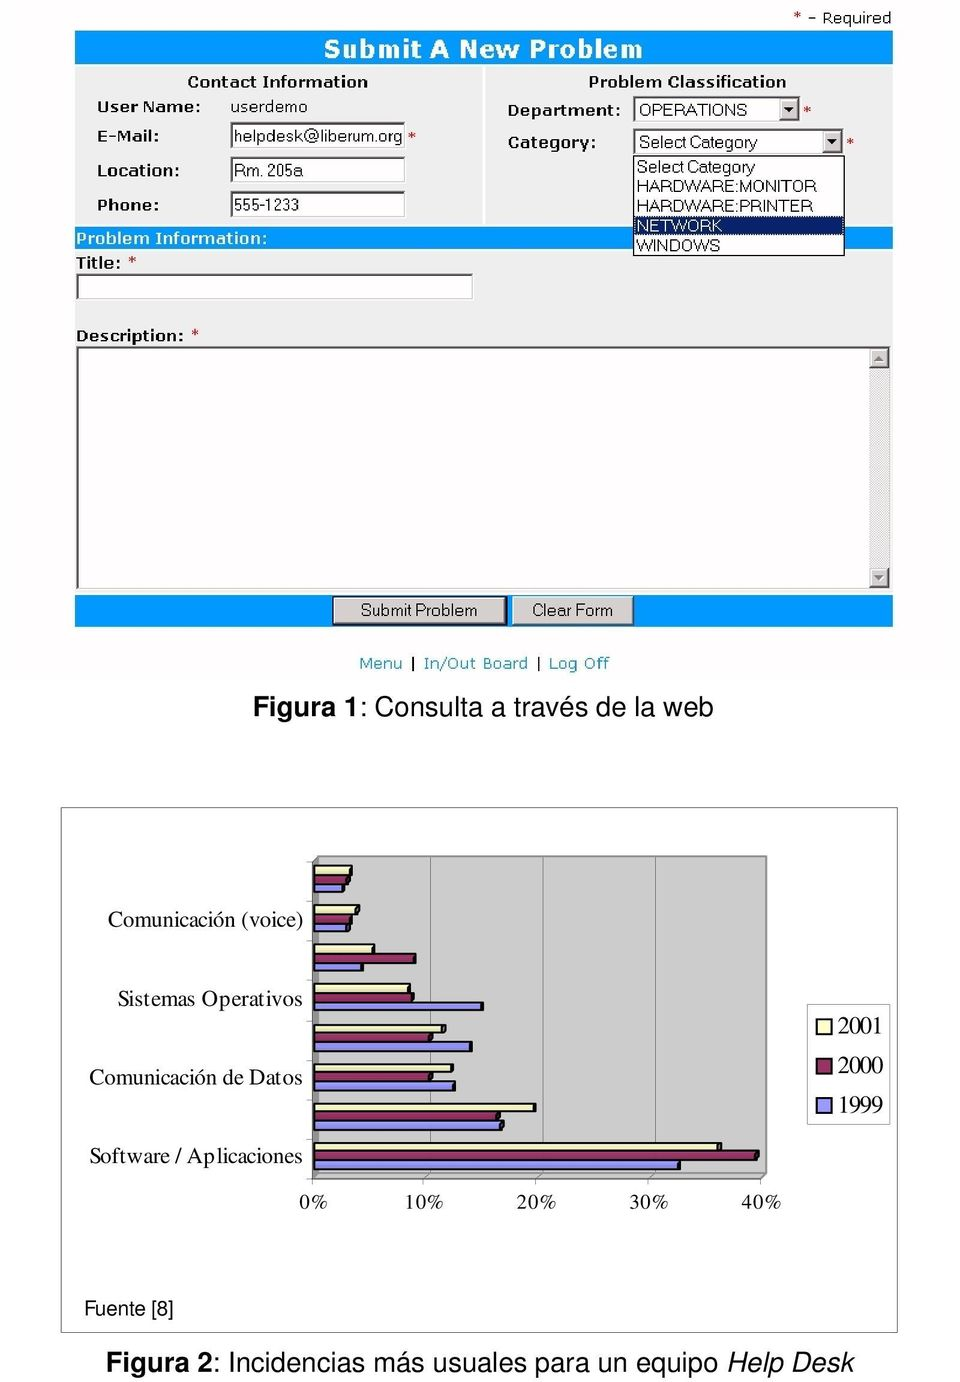 2000 1999 Software / Aplicaciones 0% 10% 20% 30% 40%